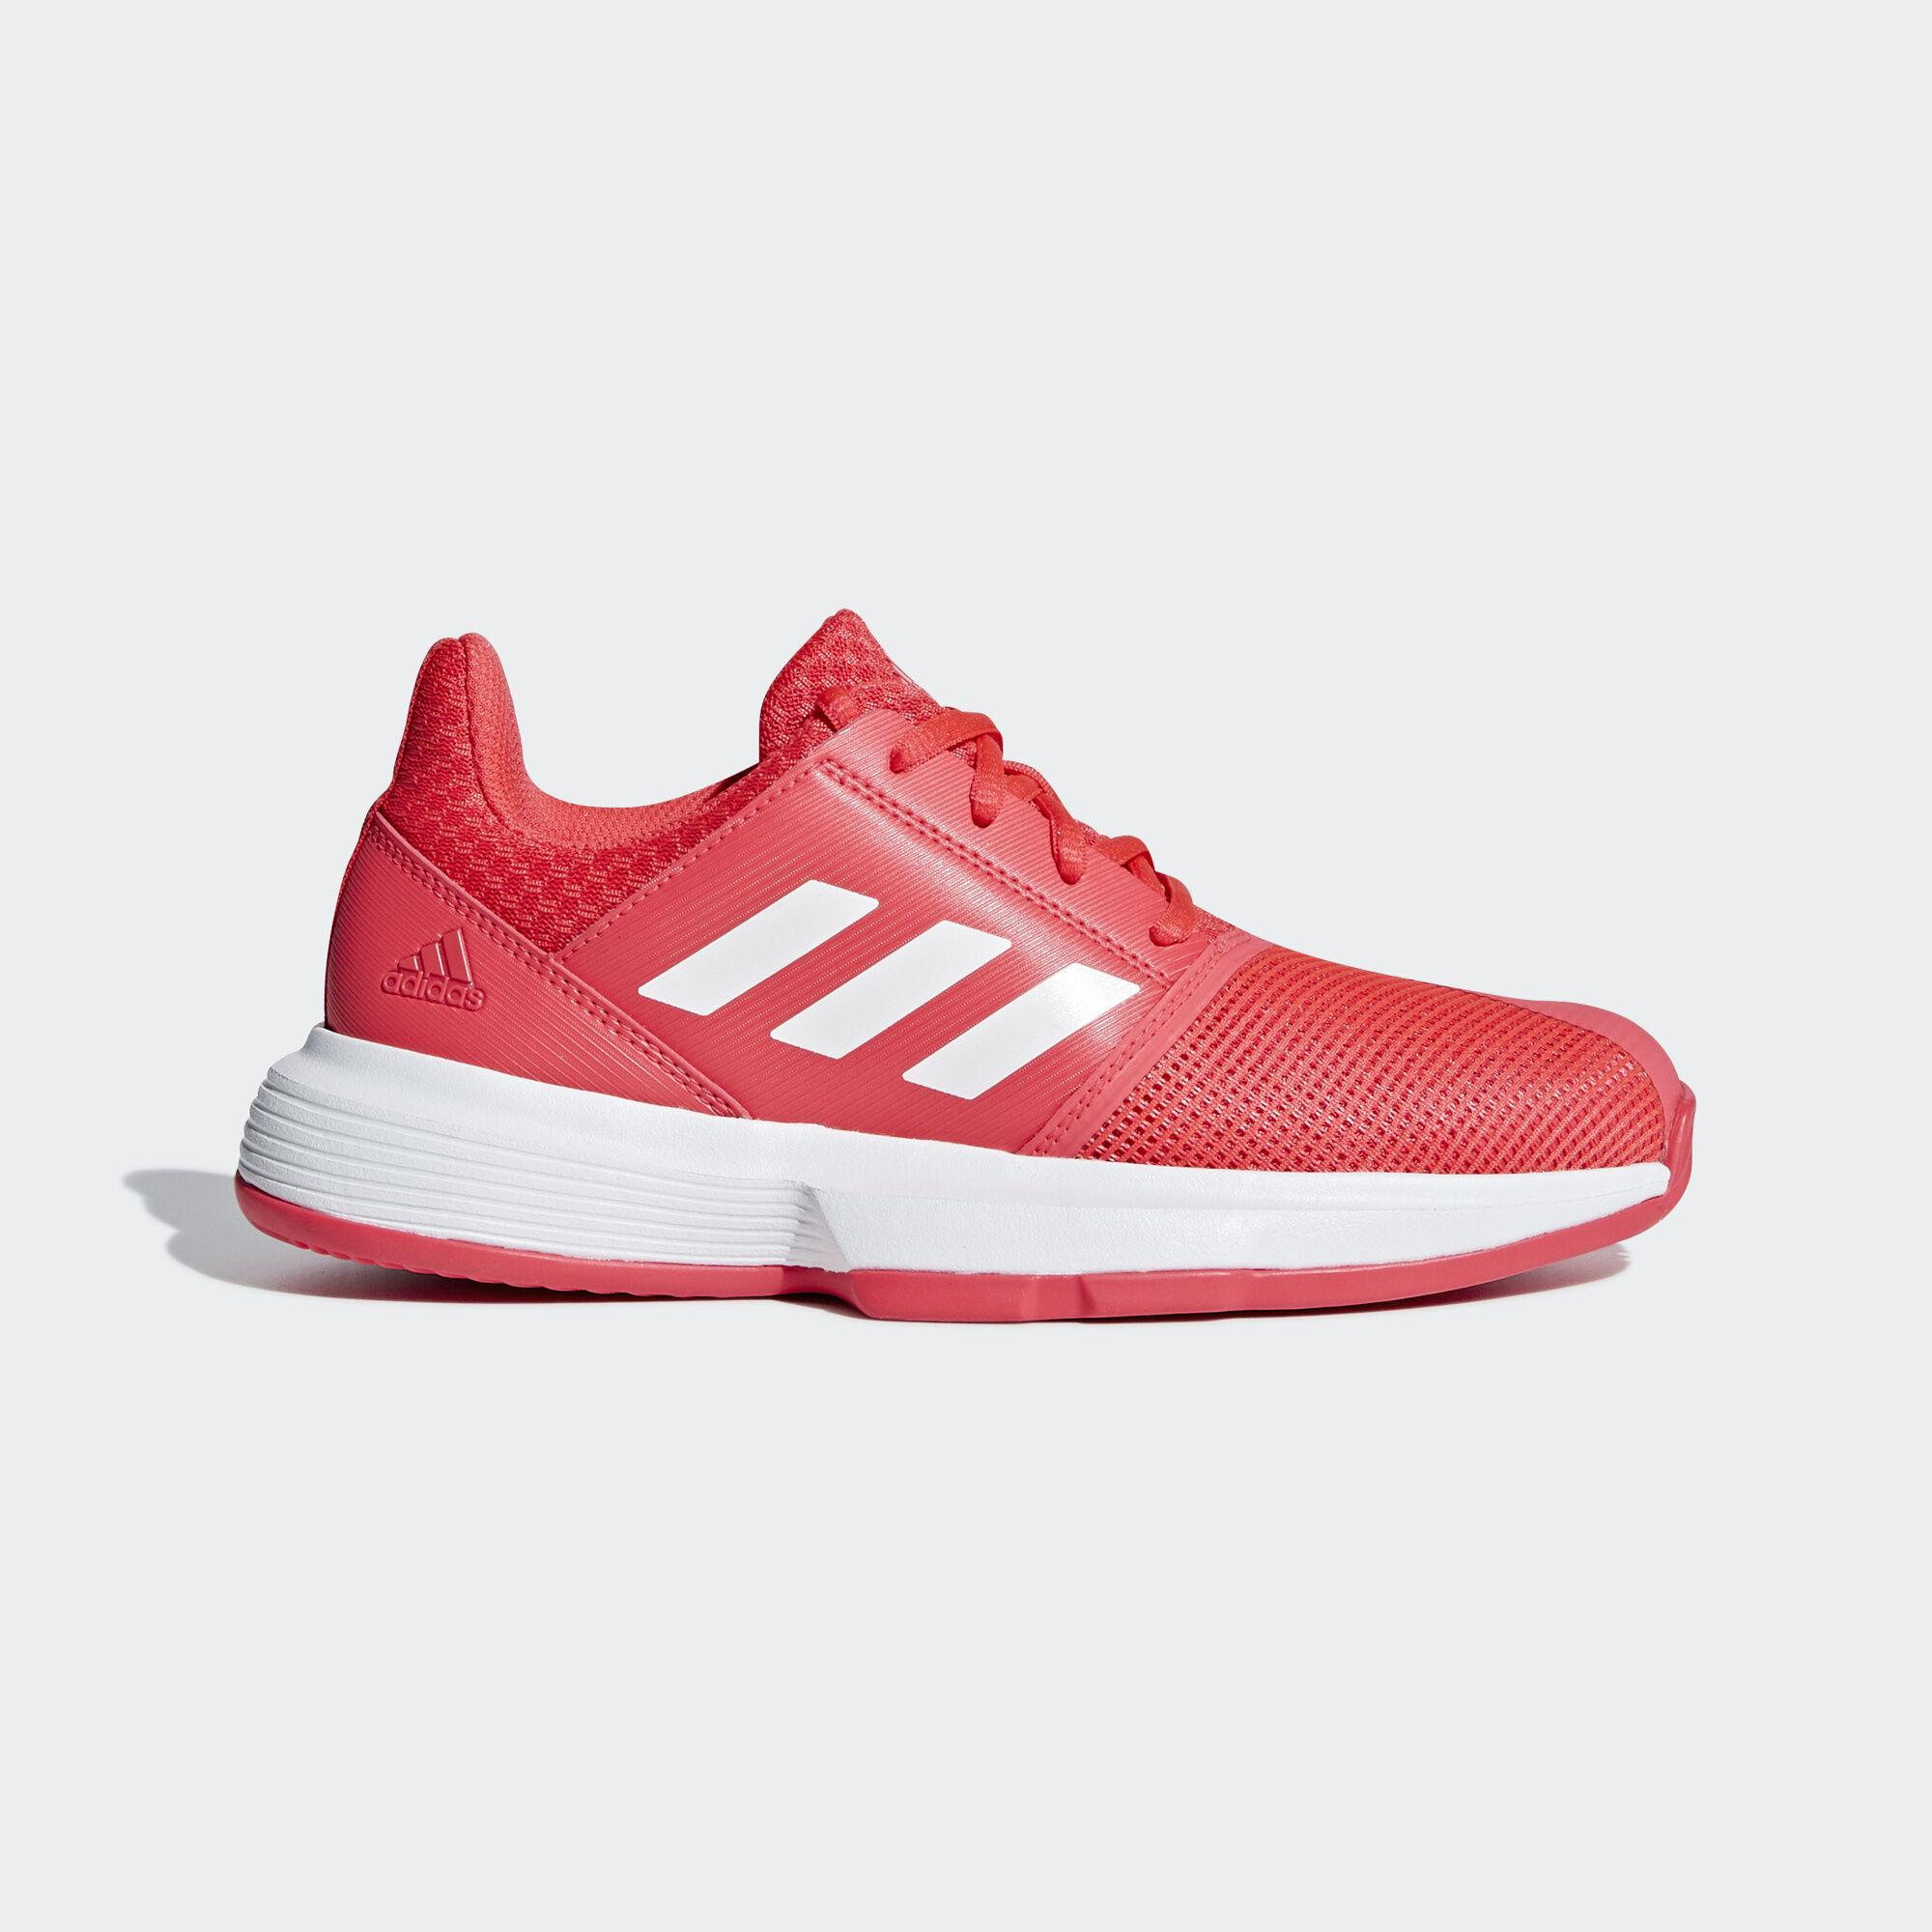 Adidas Kids CourtJam Tennis Shoes - Shock Red/Cloud White/Matte Silver